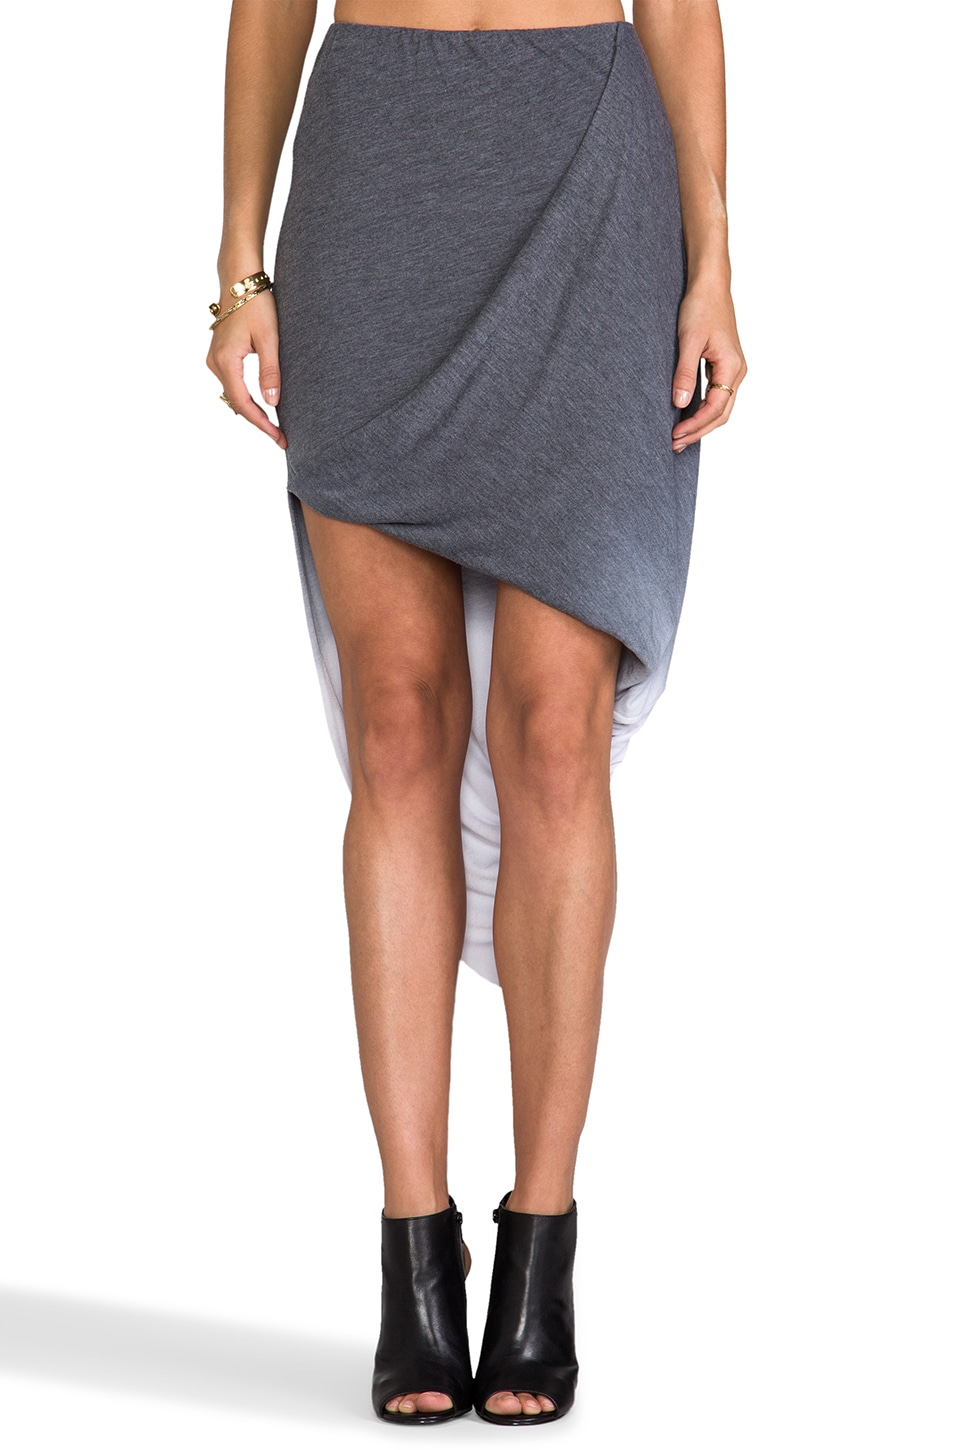 Saint Grace Caden Twisted Ombre Skirt in Black Ombre